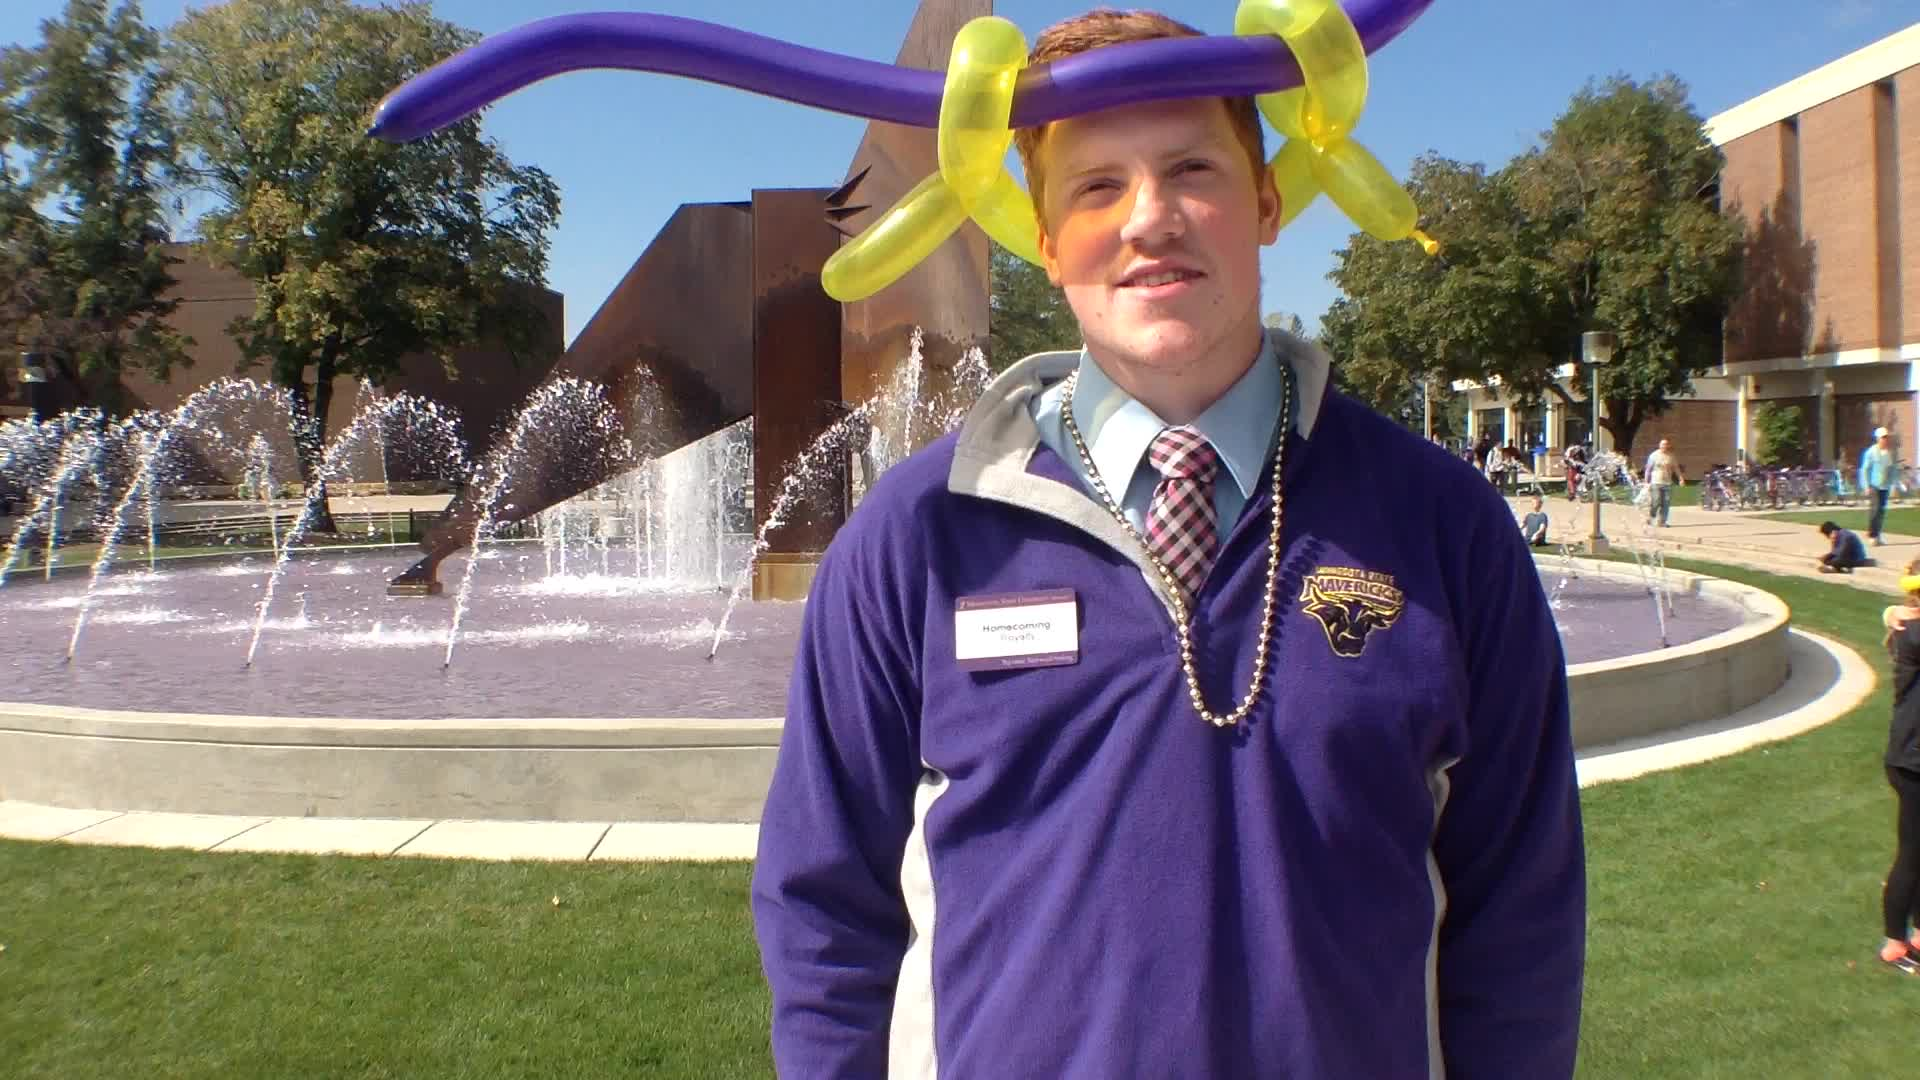 Carl Vagle, Mankato, MN - Homecoming 2015 at Minnesota State University, Mankato